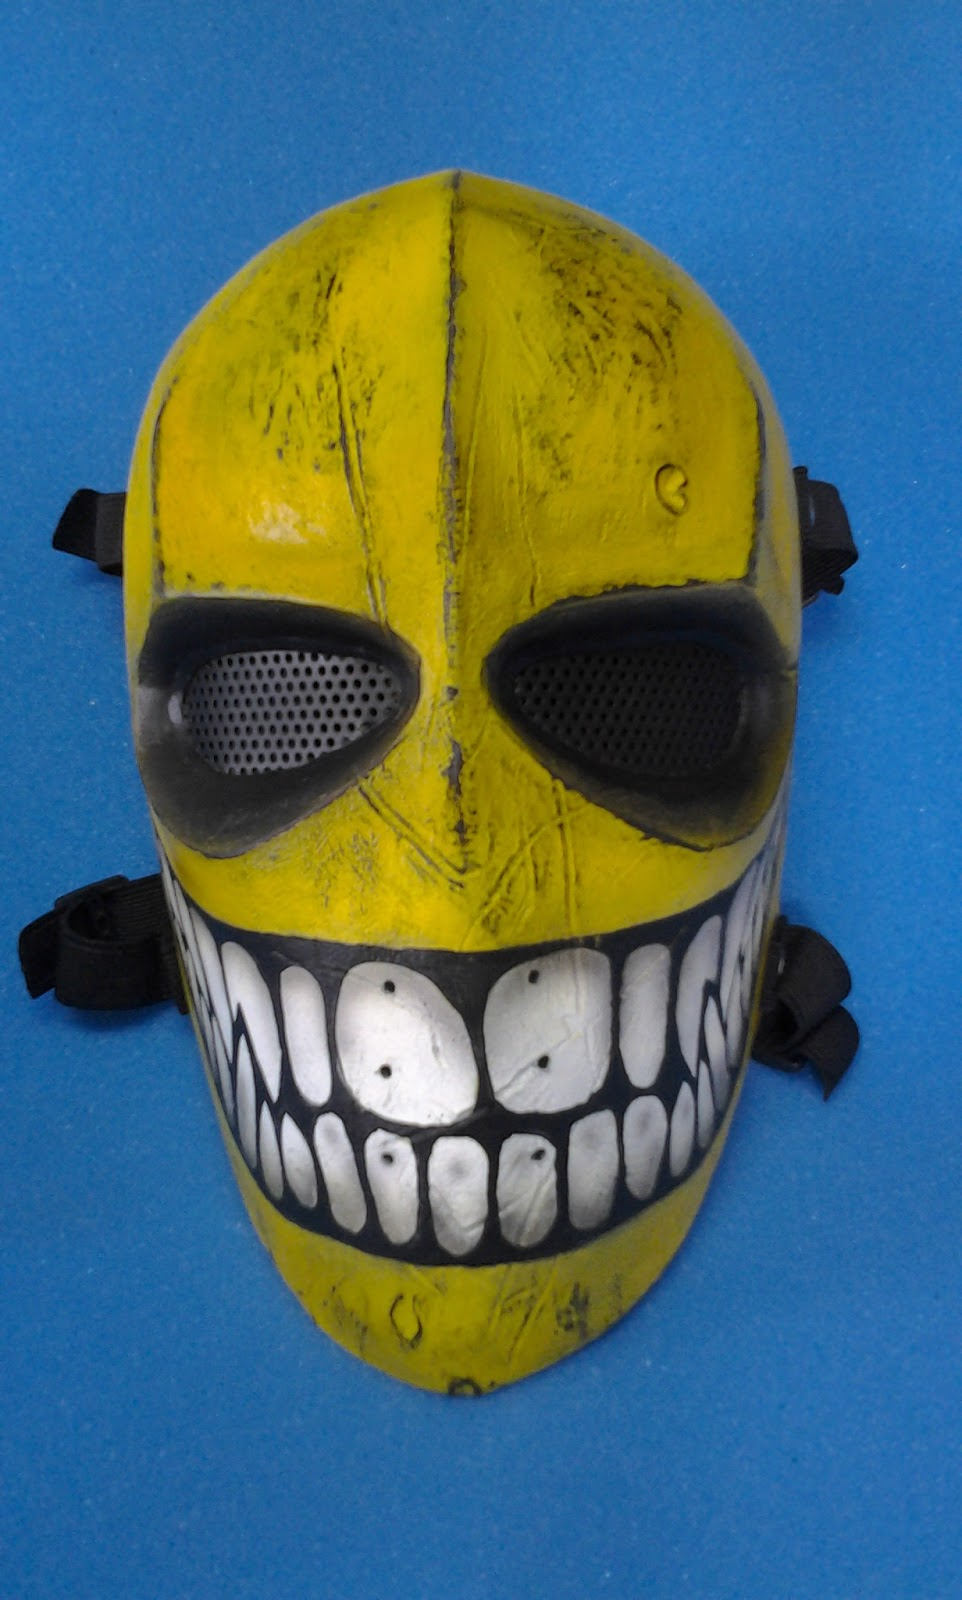 Fiber and Resin: Yellow Smiling Mask